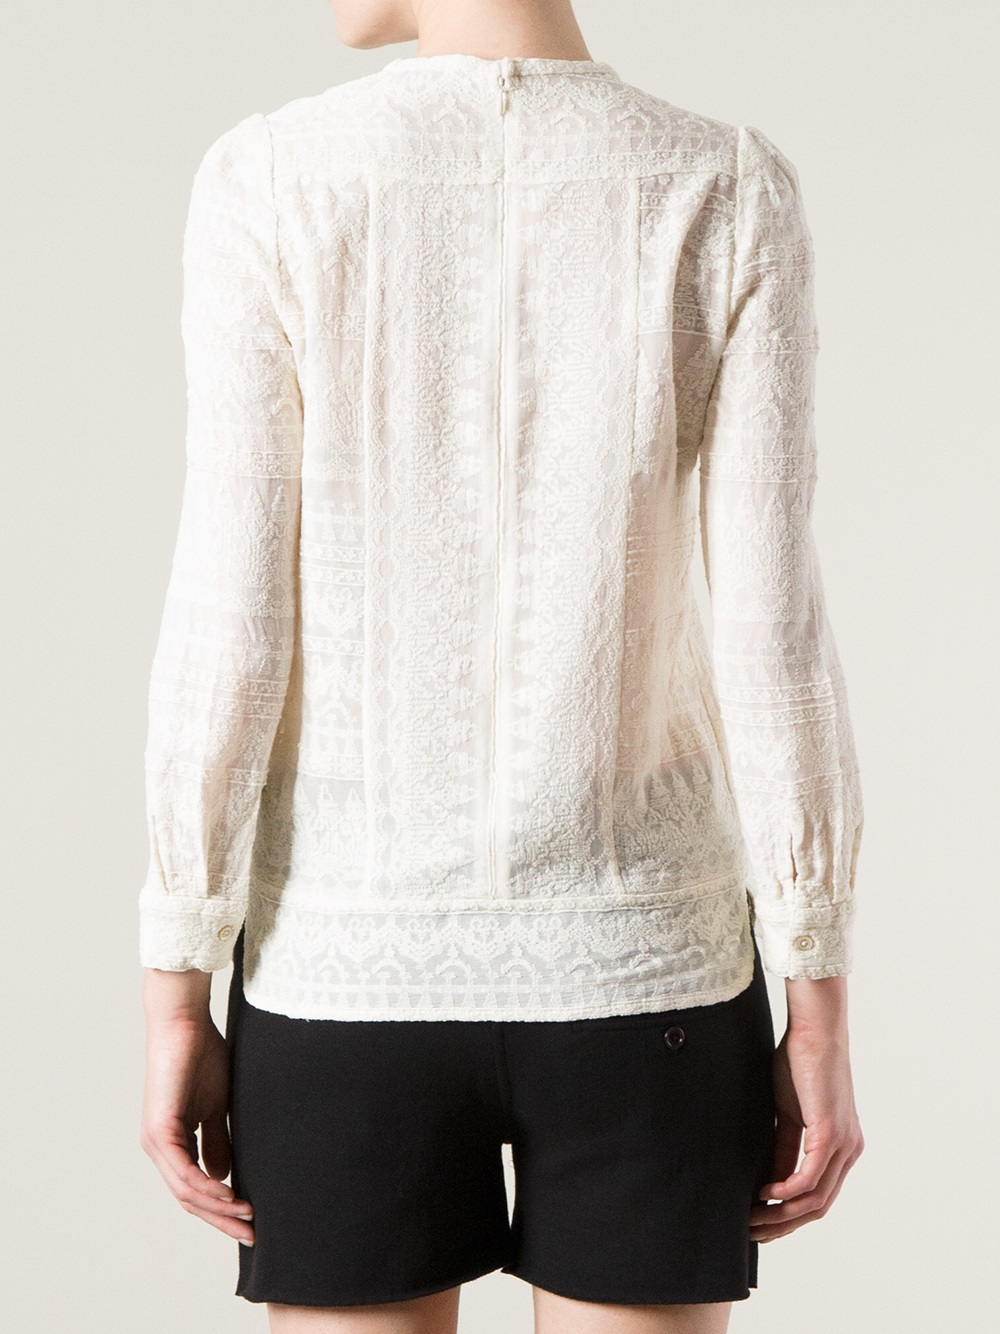 d3d10ffa1b Isabel Marant Tess Lace Top in White - Lyst